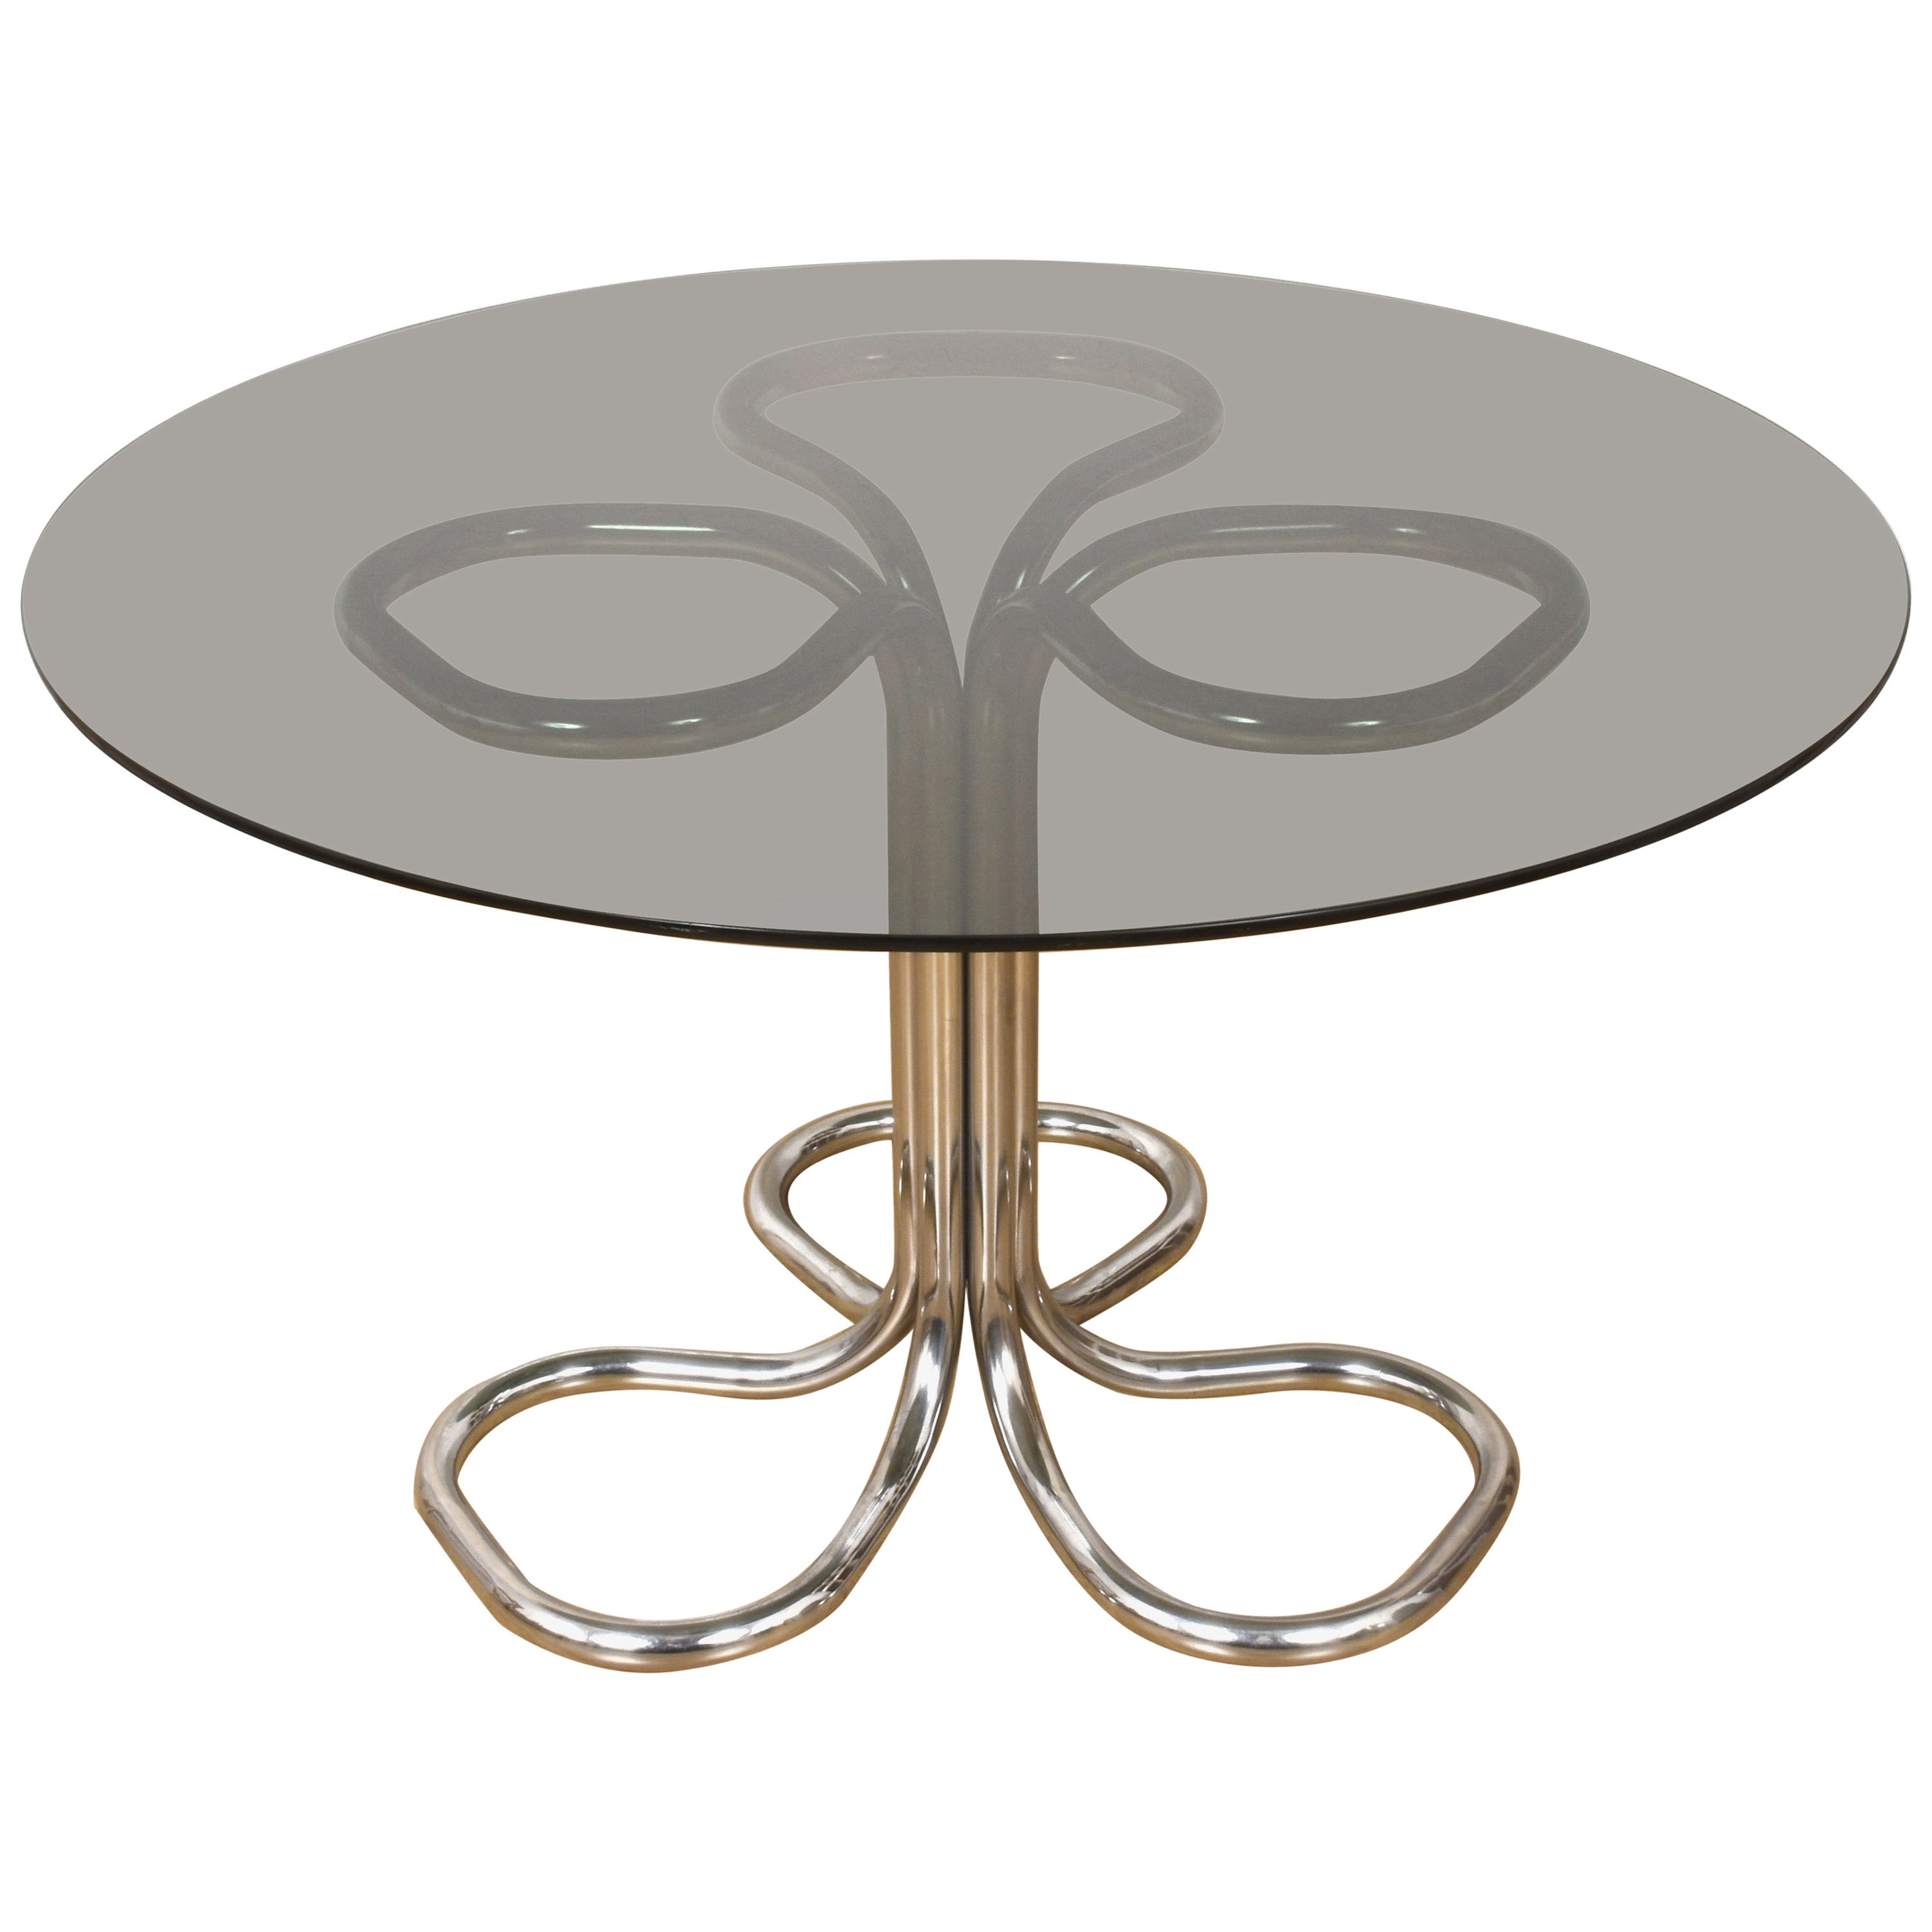 Italian Chrome Base Smoked Glass Top Dining Table, Giotto Stoppino, Italy, 1970s